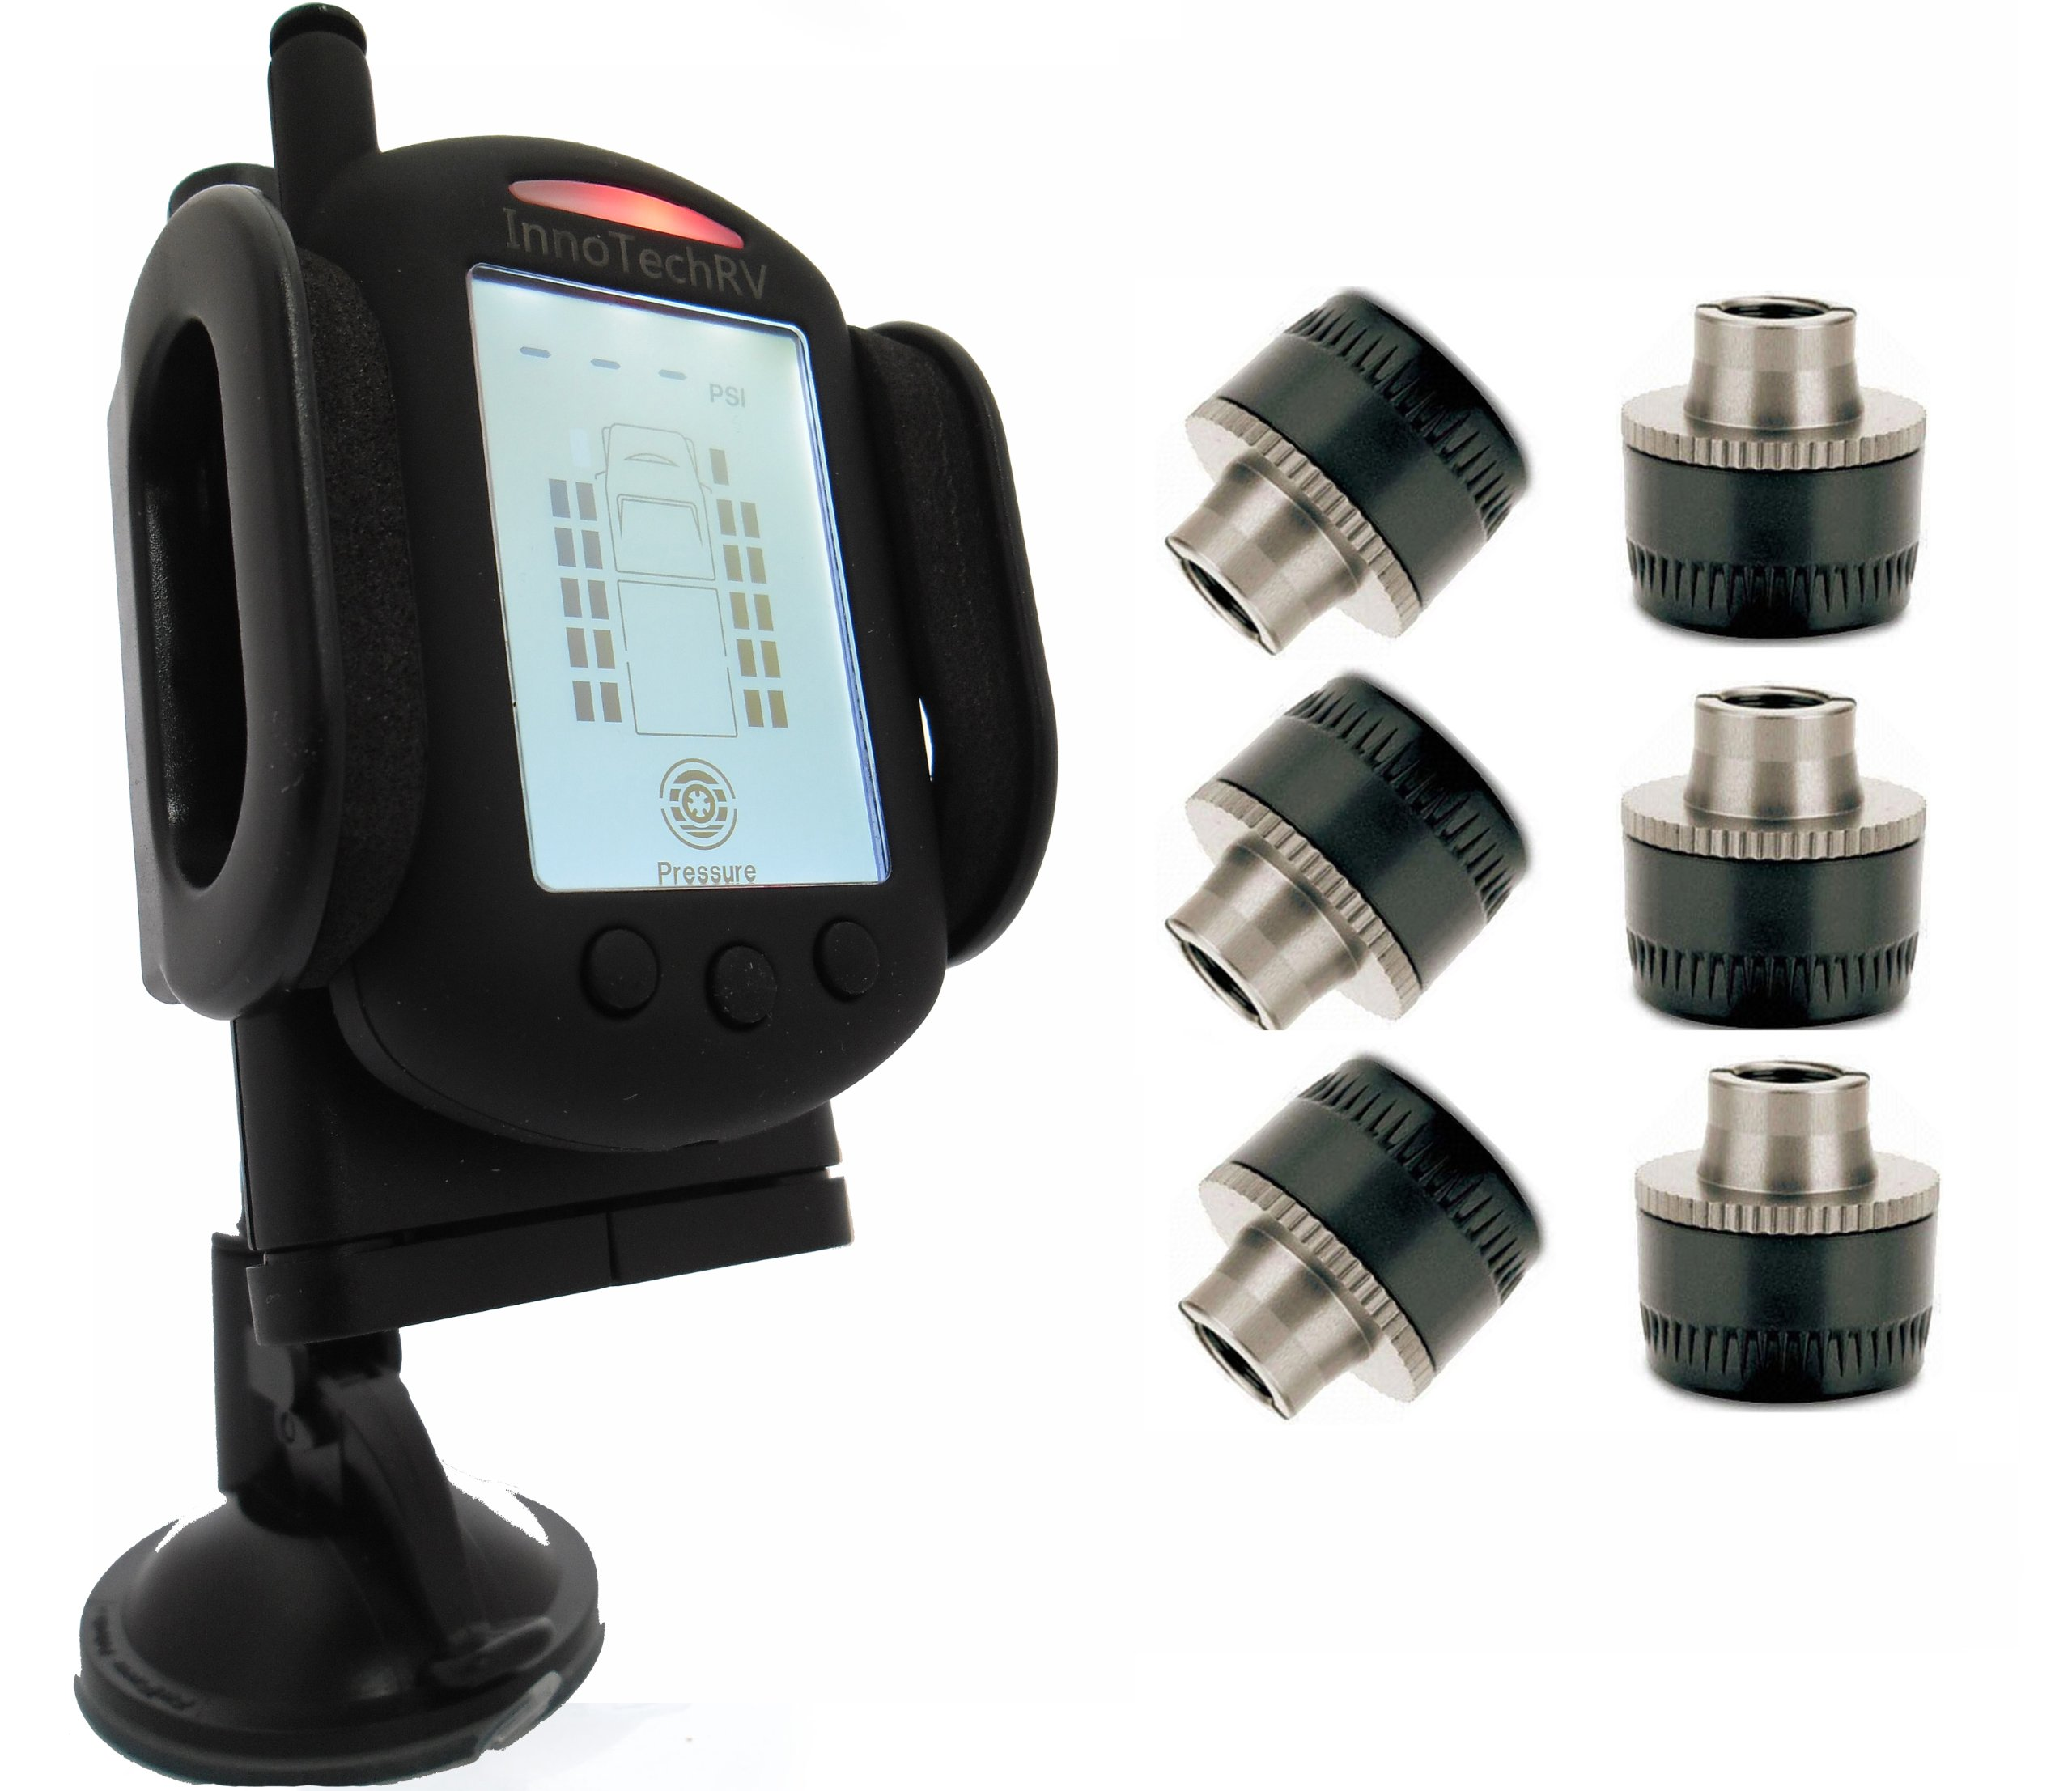 Tire Pressure Monitoring System for RVs and Trucks with 6 Sensors